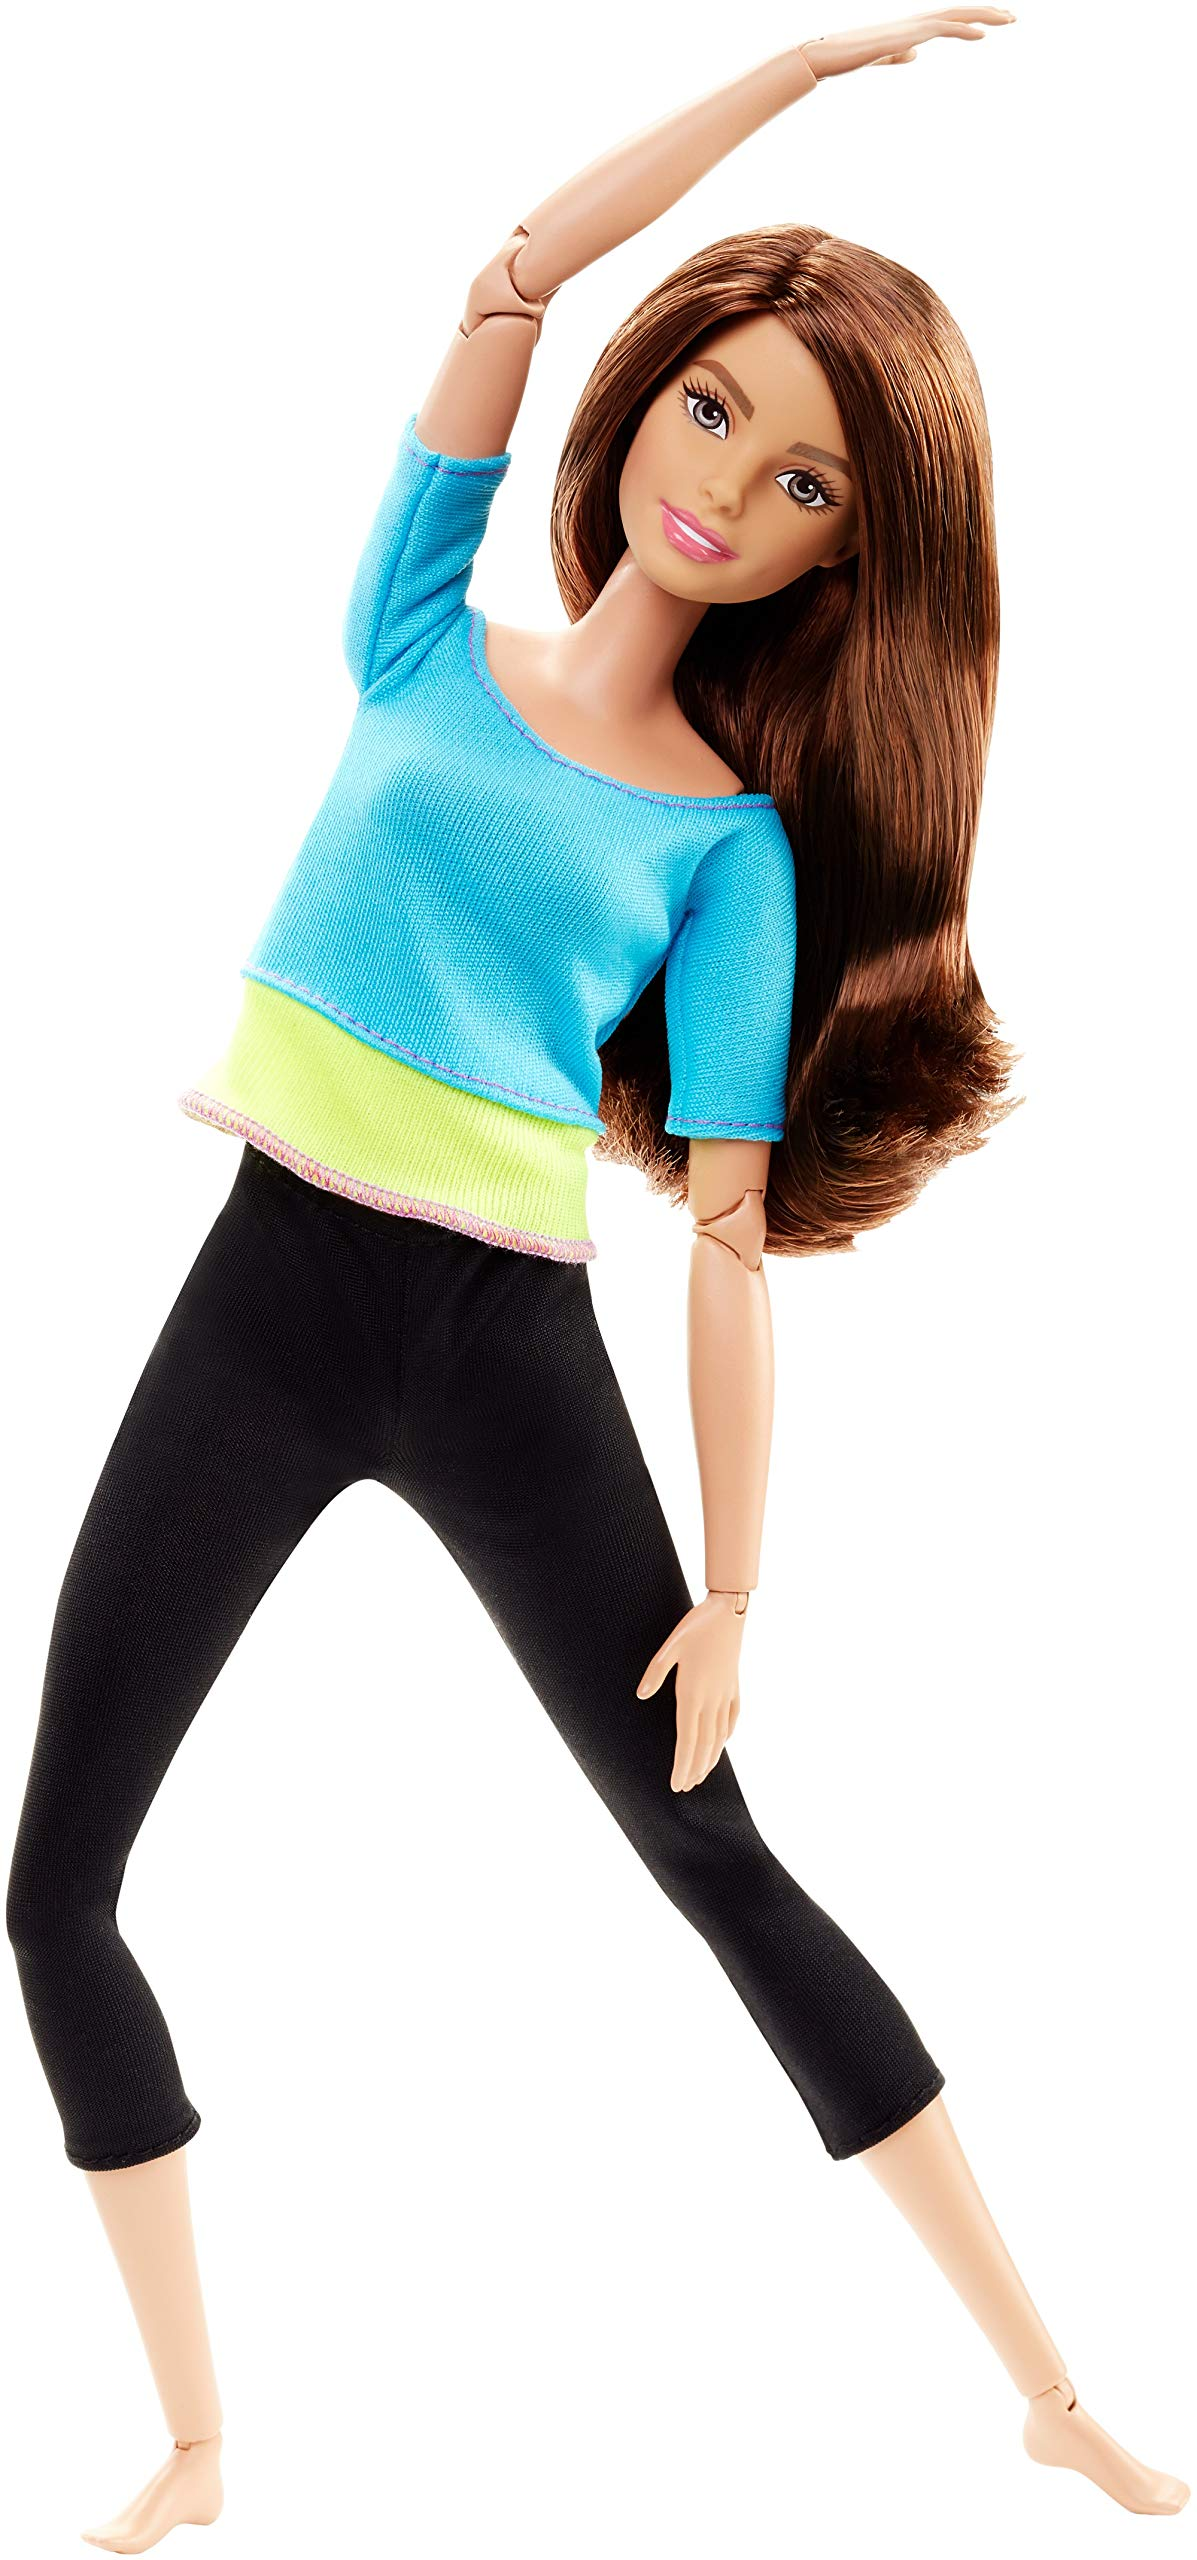 Barbie Made to Move Doll, Blue Top [Amazon Exclusive]